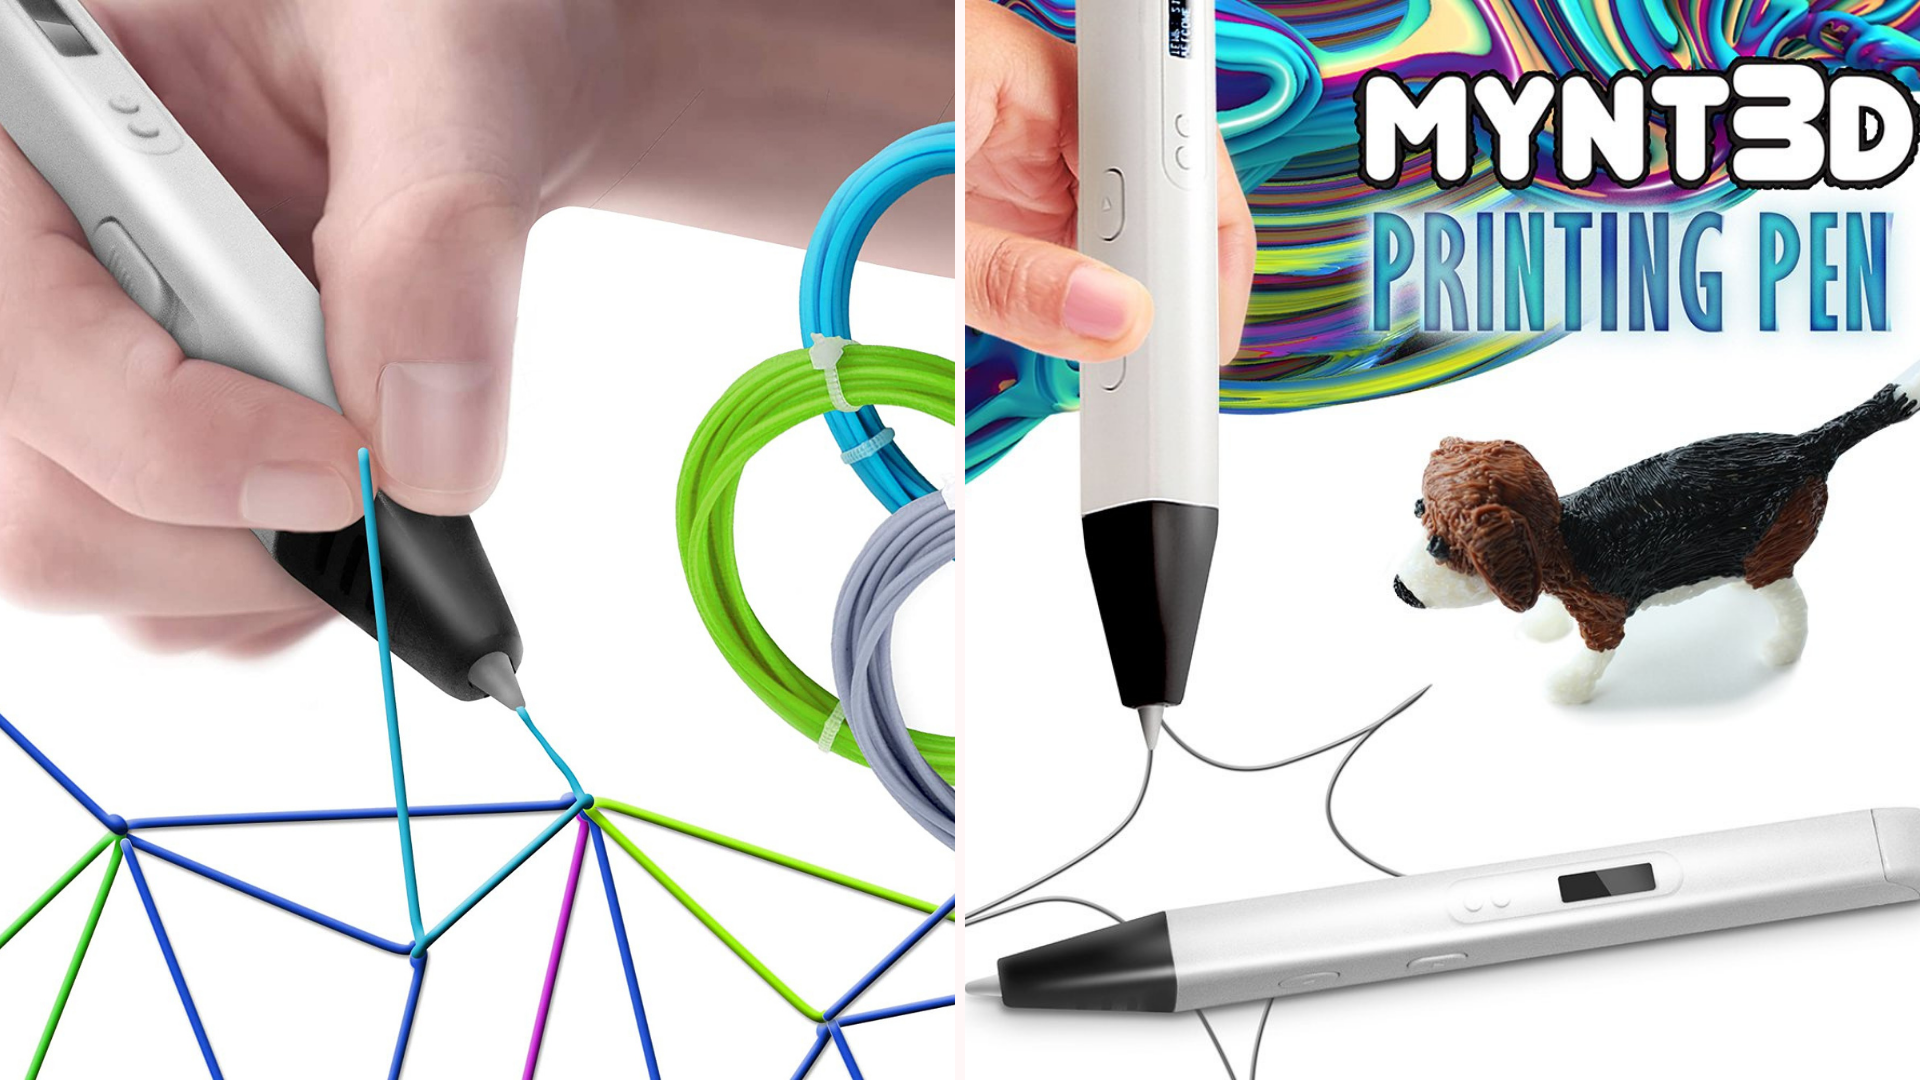 two examples of 3D printing elements drawn by a stylus